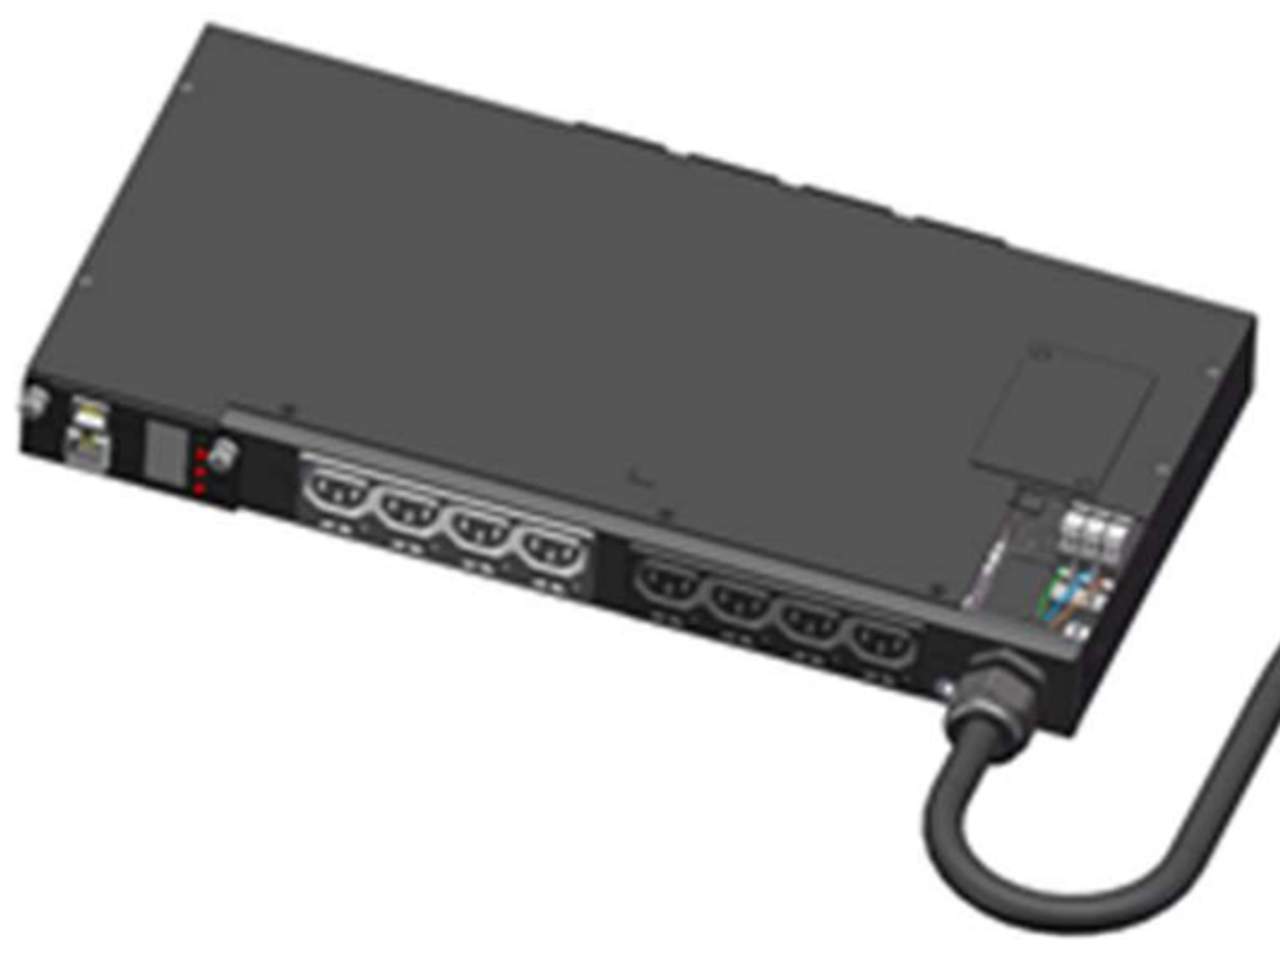 Front-Top view: shows rewireable input cable and front IEC C13 outlets